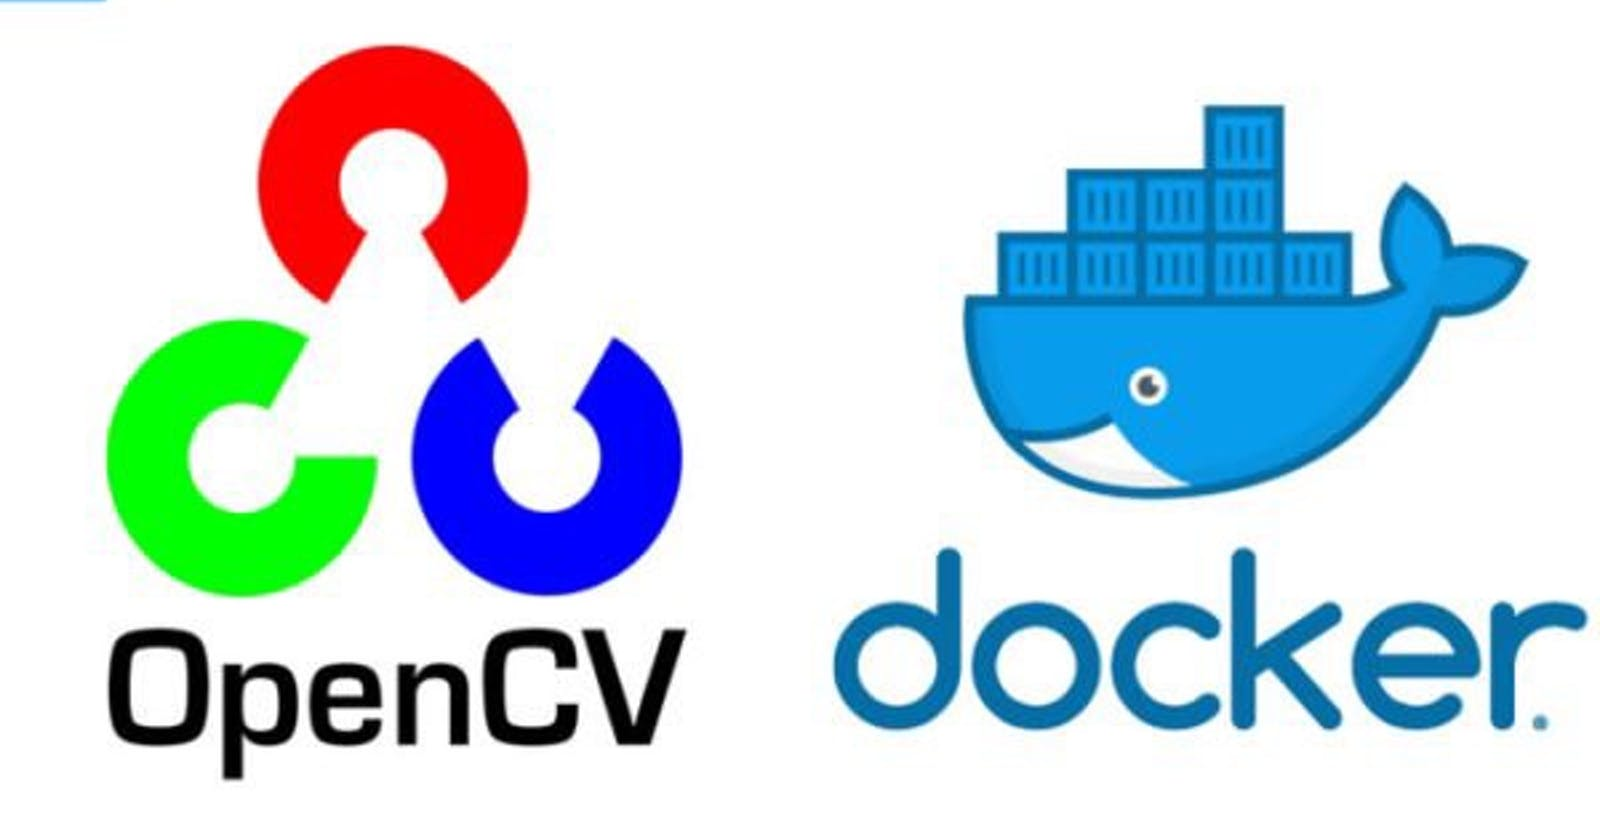 Taking pictures in Docker container!